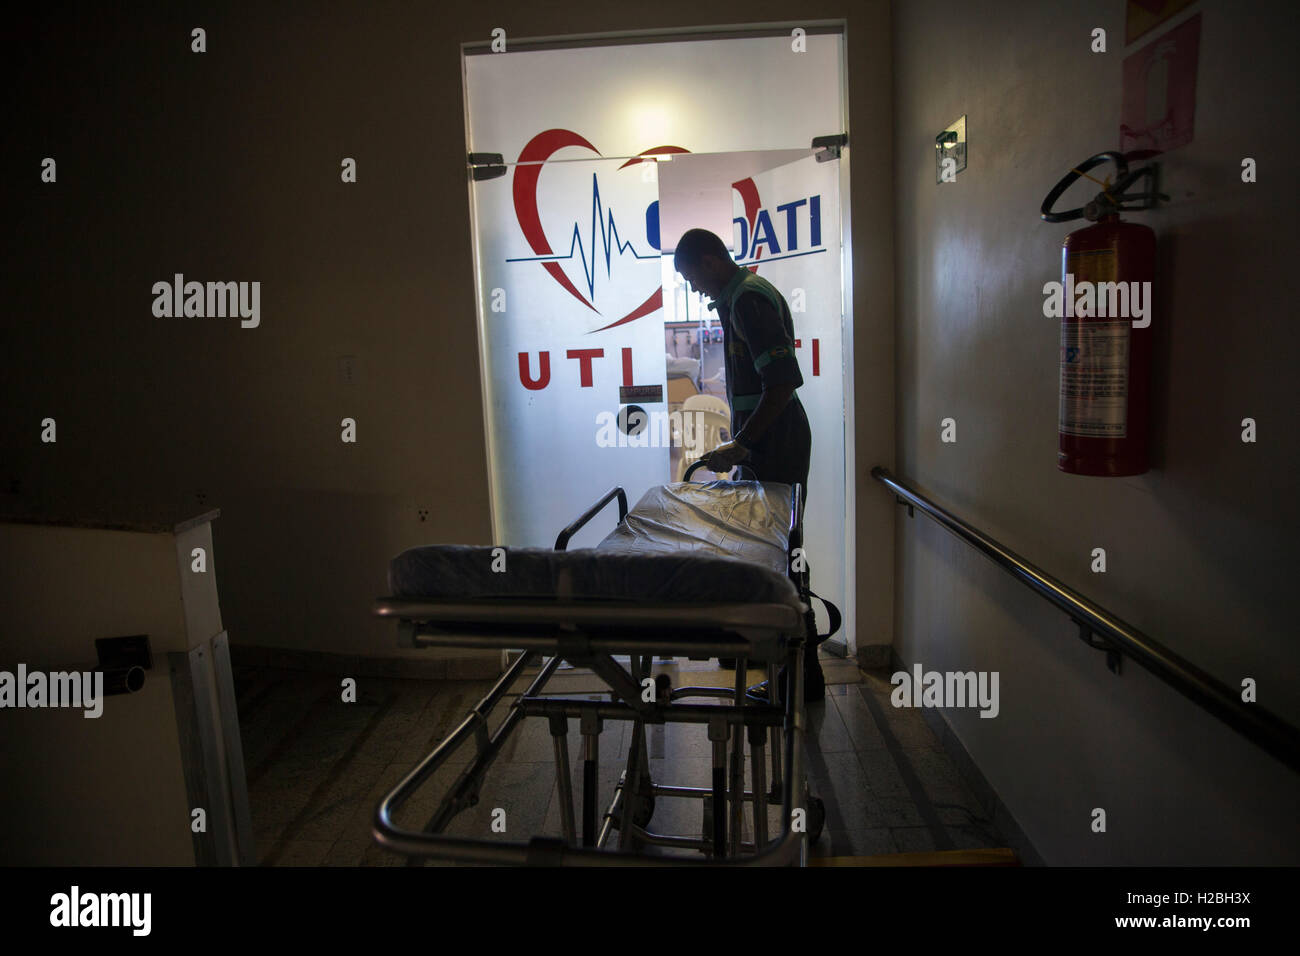 Entrance of an intensive care unit (ICU), a special department of a hospital or health care facility that provides - Stock Image